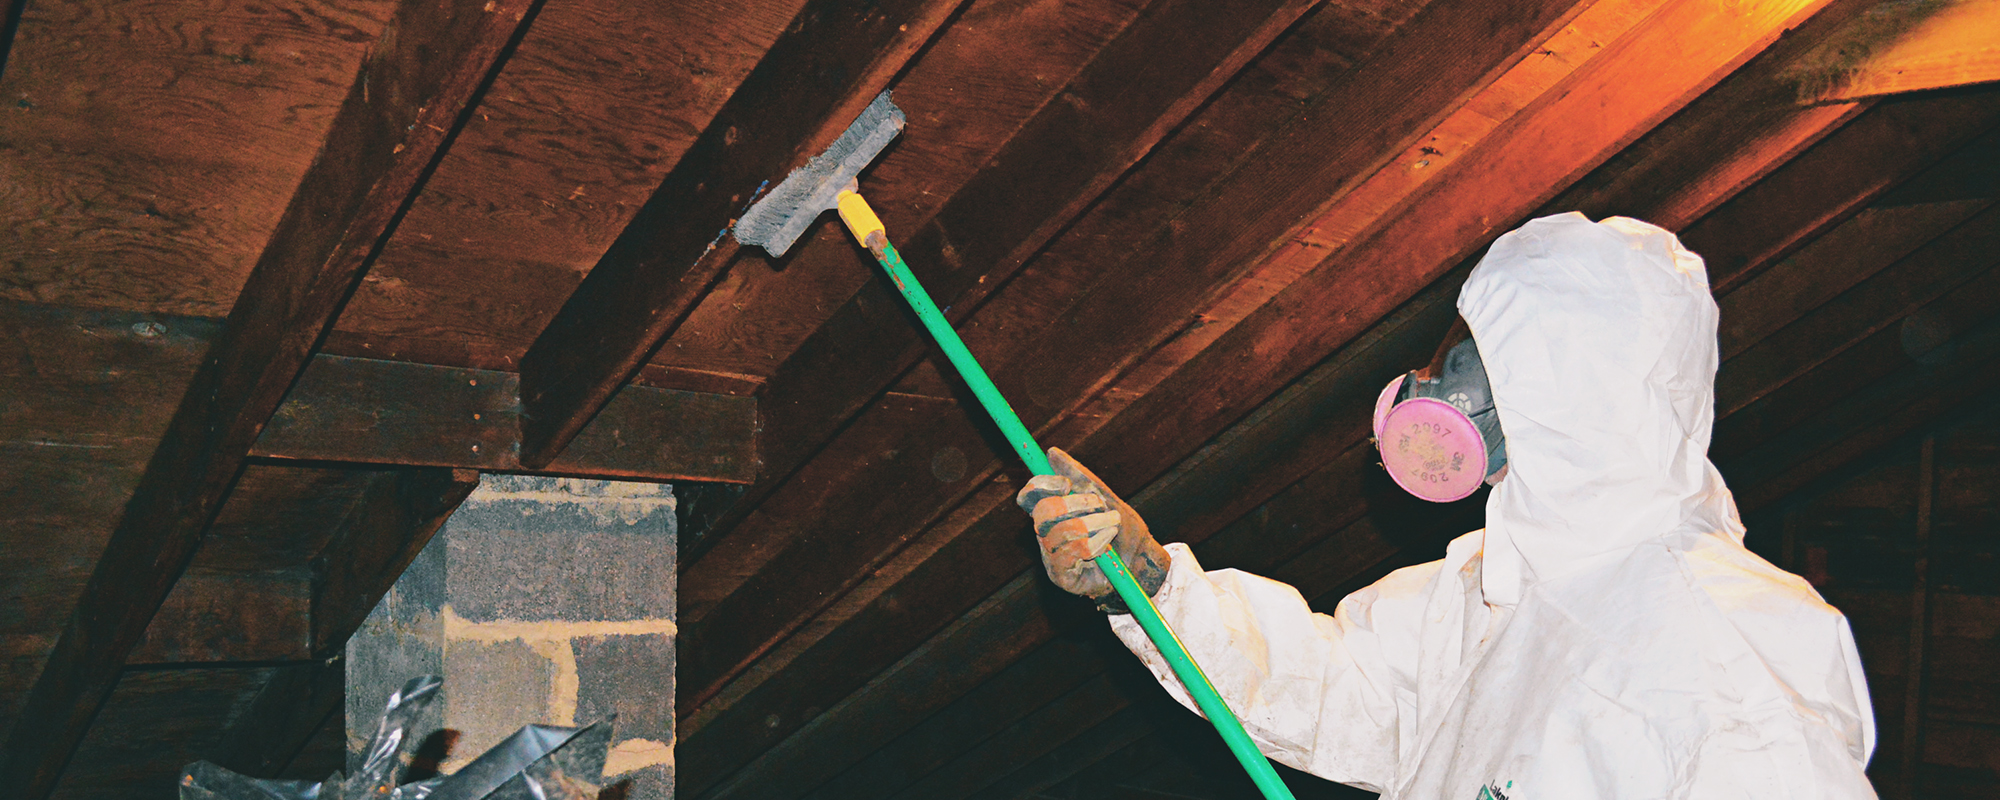 Attic Mold Removal Nj Professional South Jersey Mold